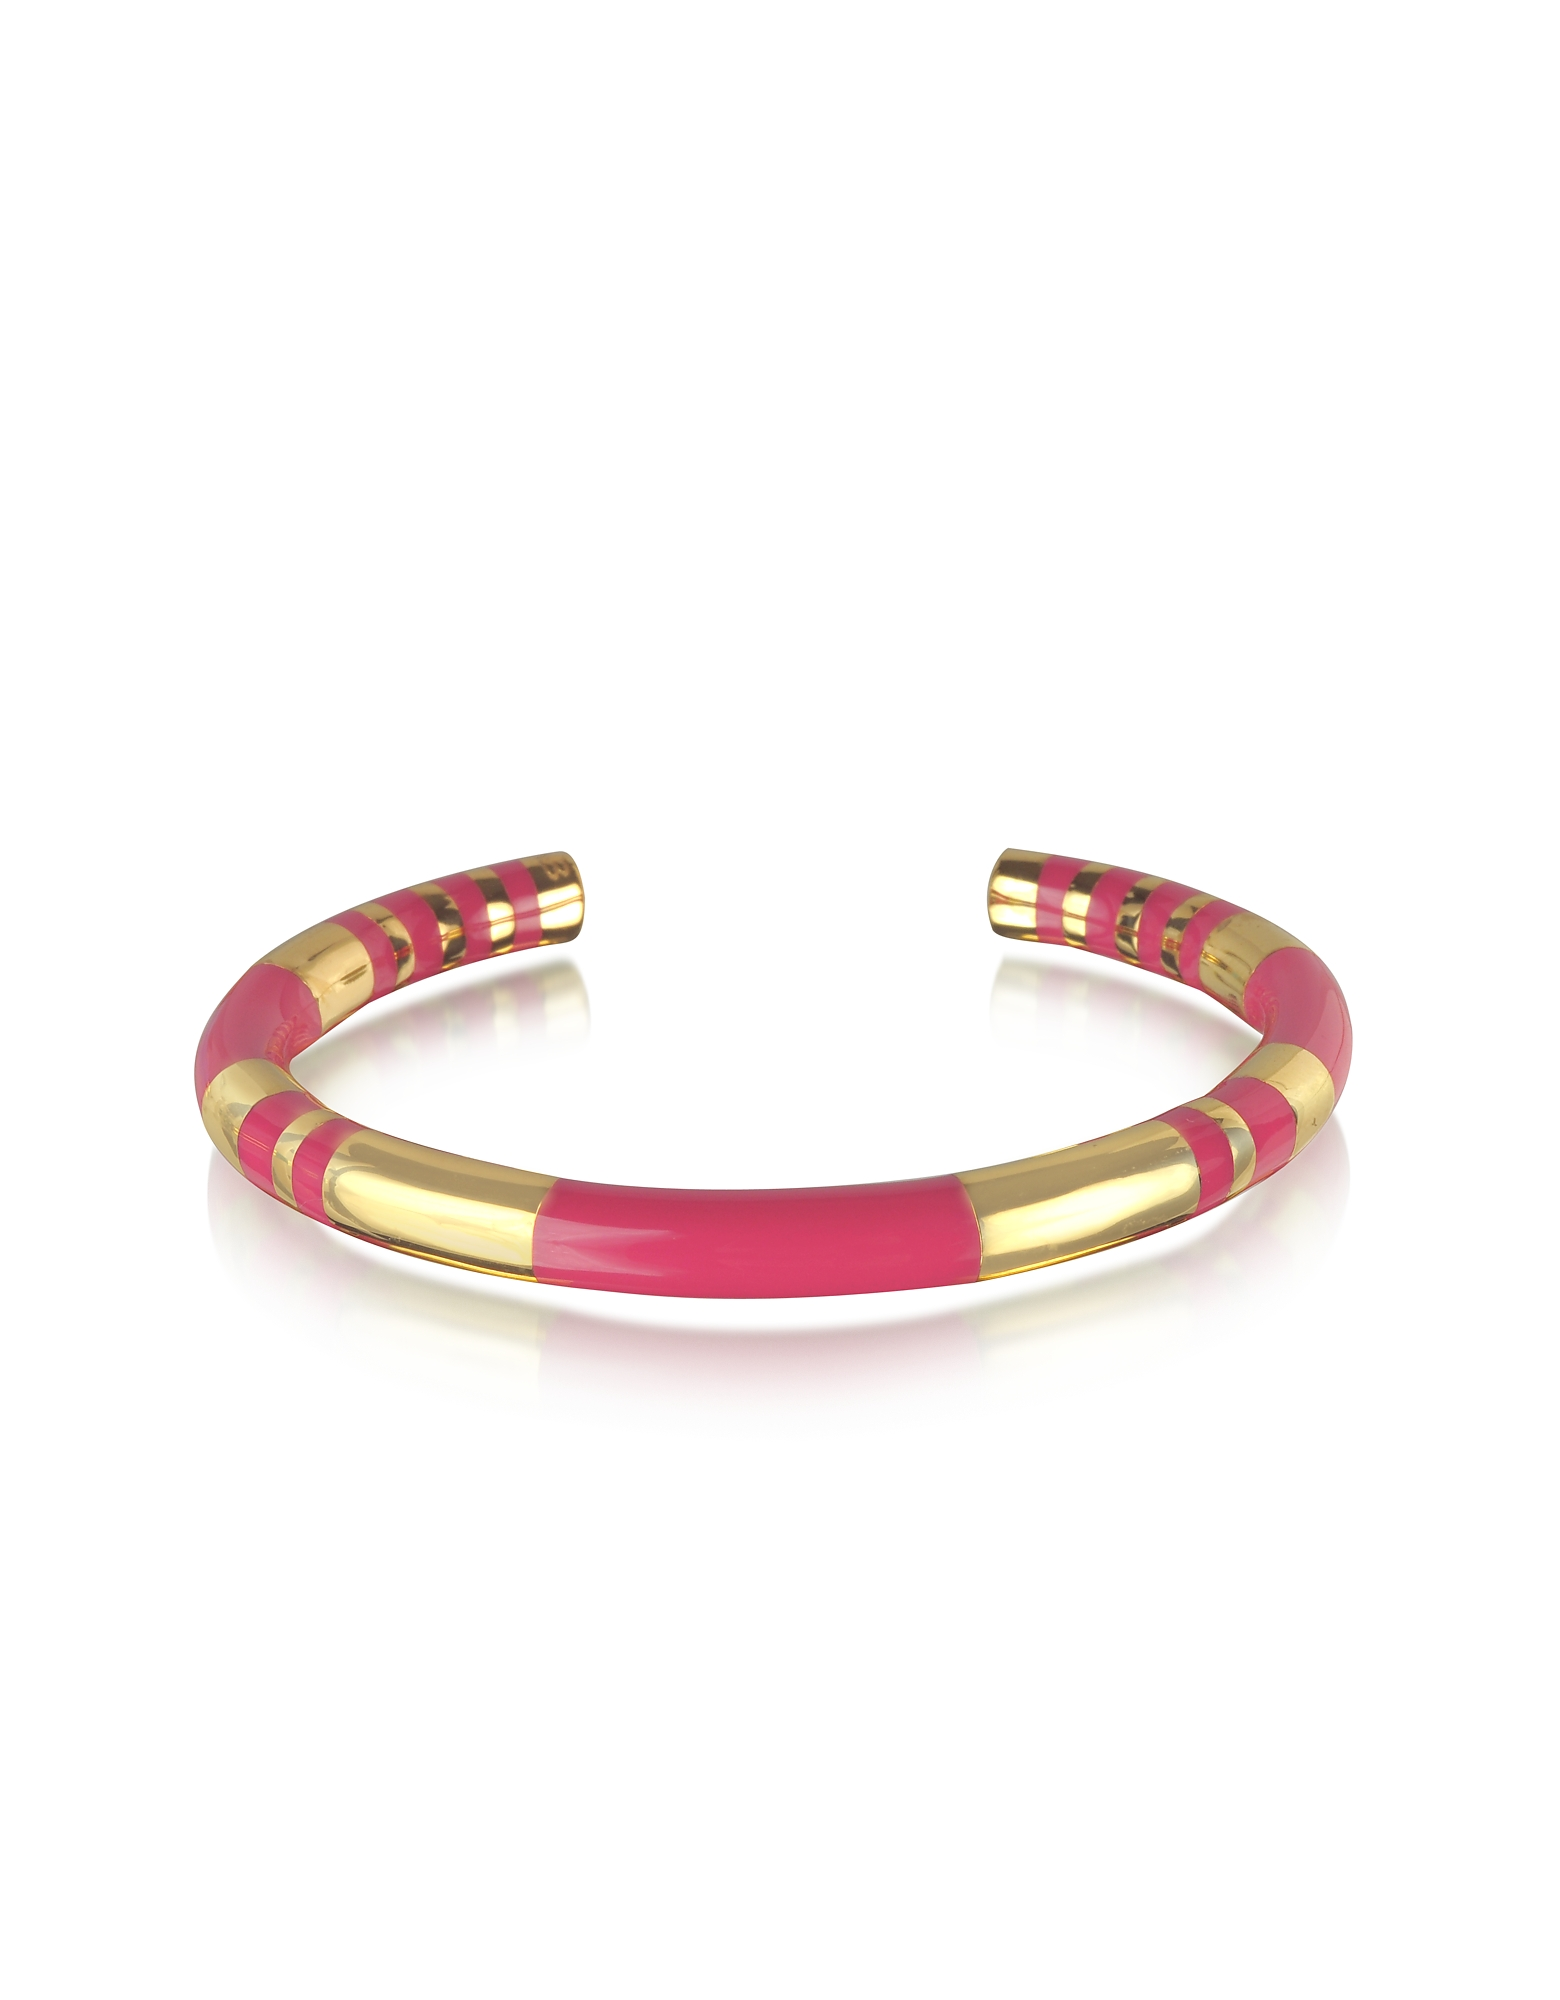 Image of Aurelie Bidermann Designer Bracelets, 18K gold-plated & Fuchsia Enamel Resin Positano Striped Bangle